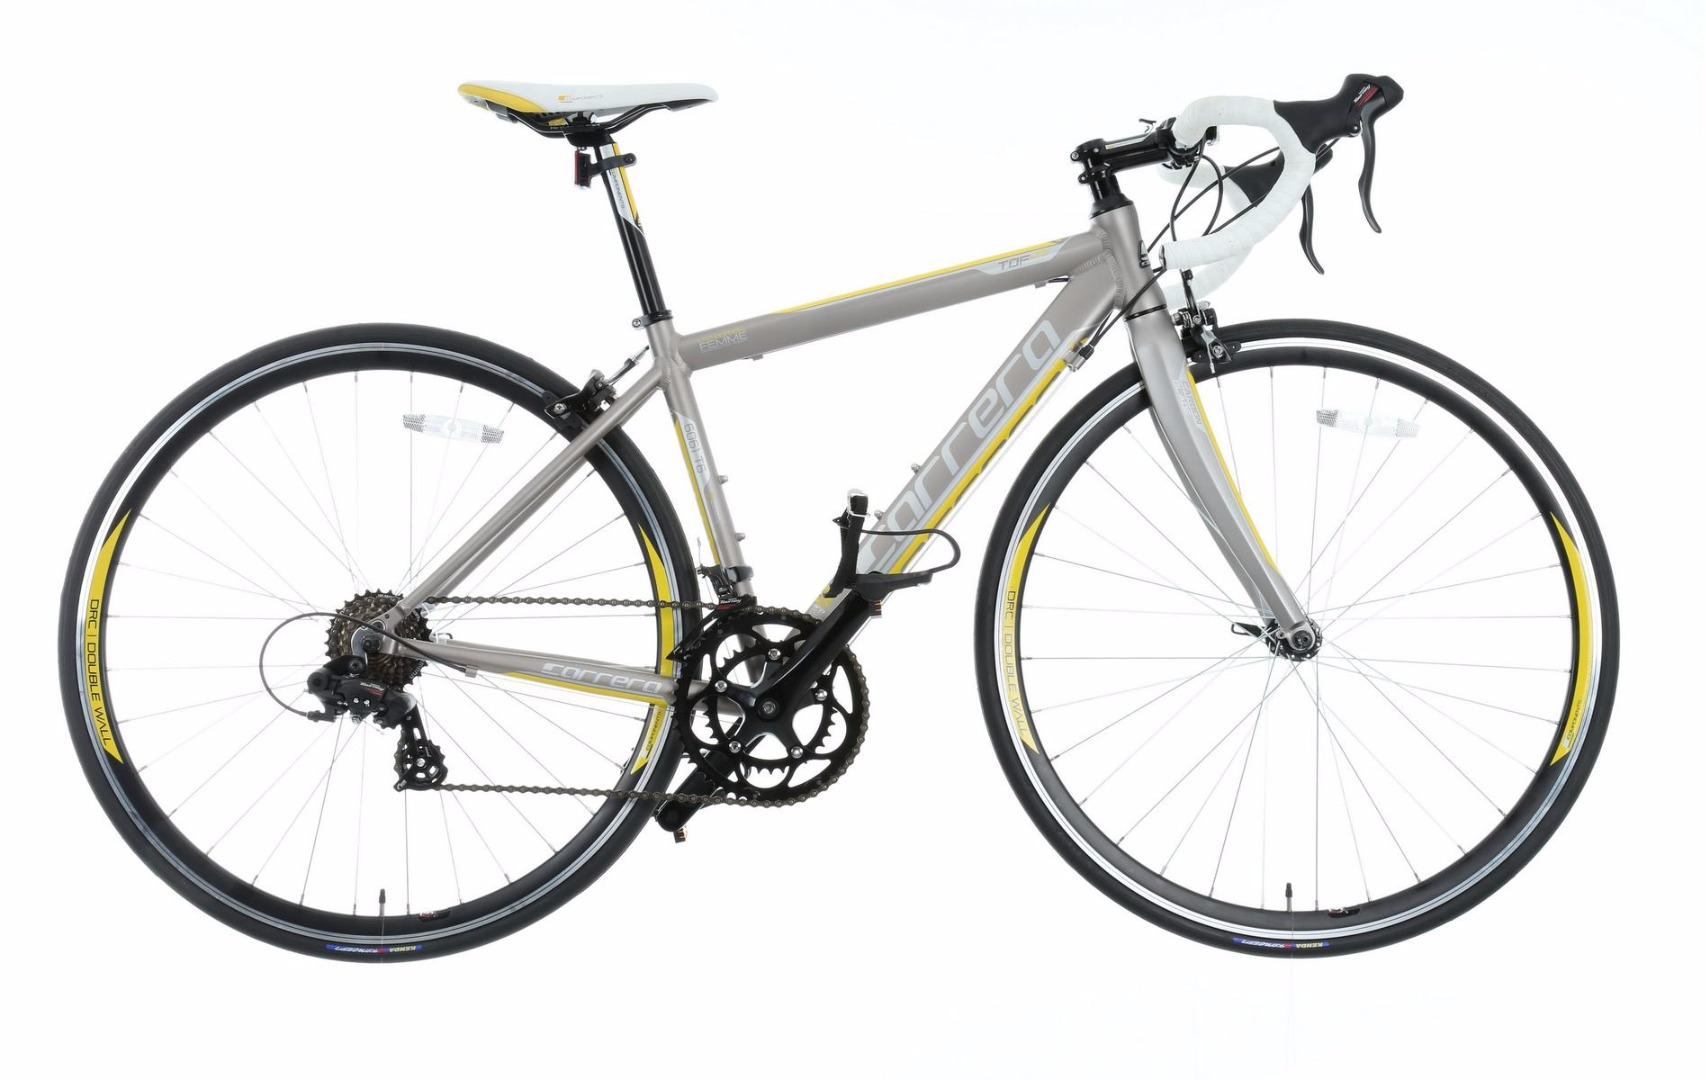 Stolen Carrera bicycles TDF Ladies Road Bike, product number 131213